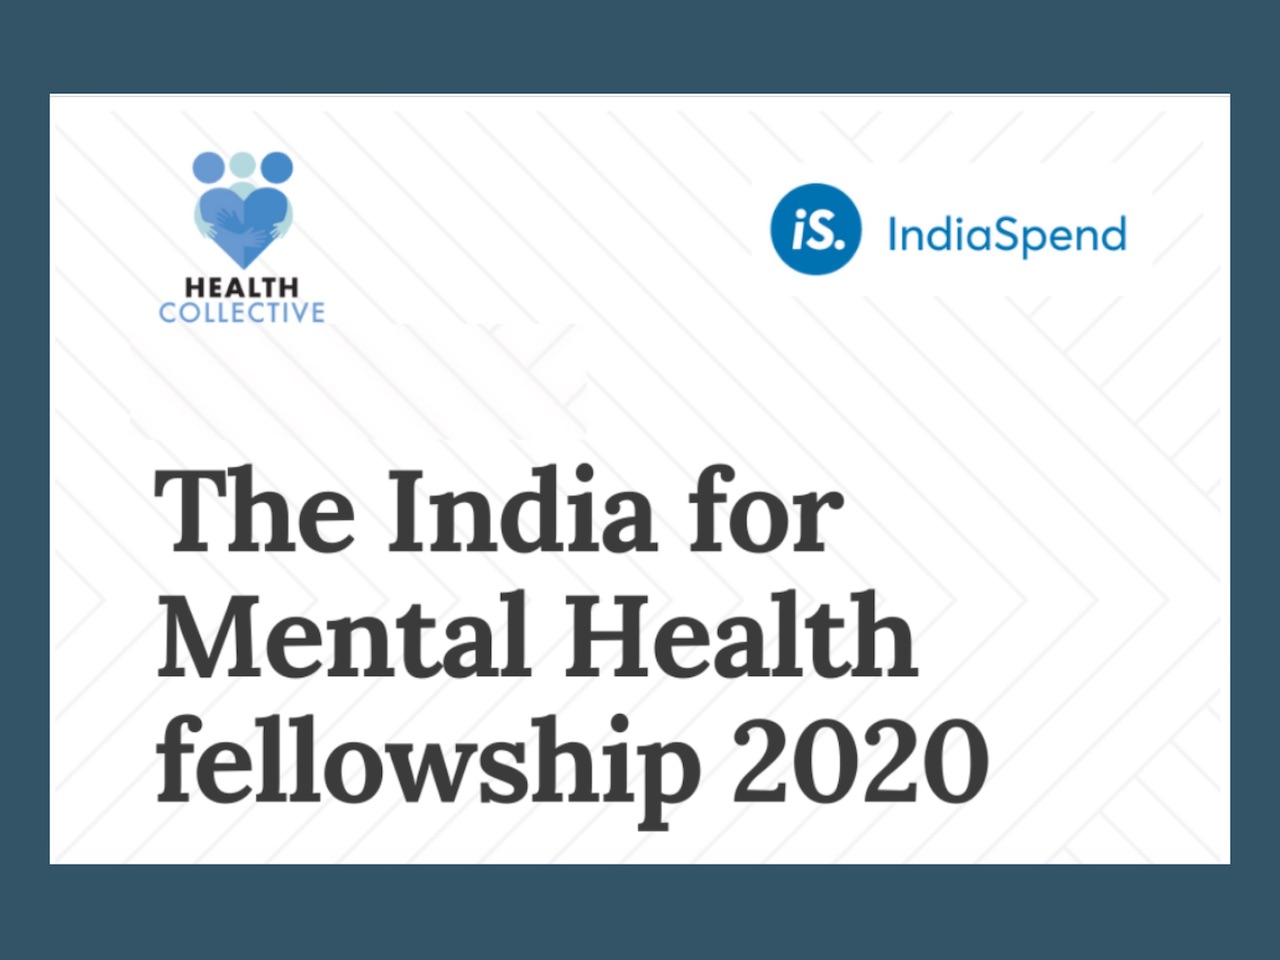 Health Collective and India Spend